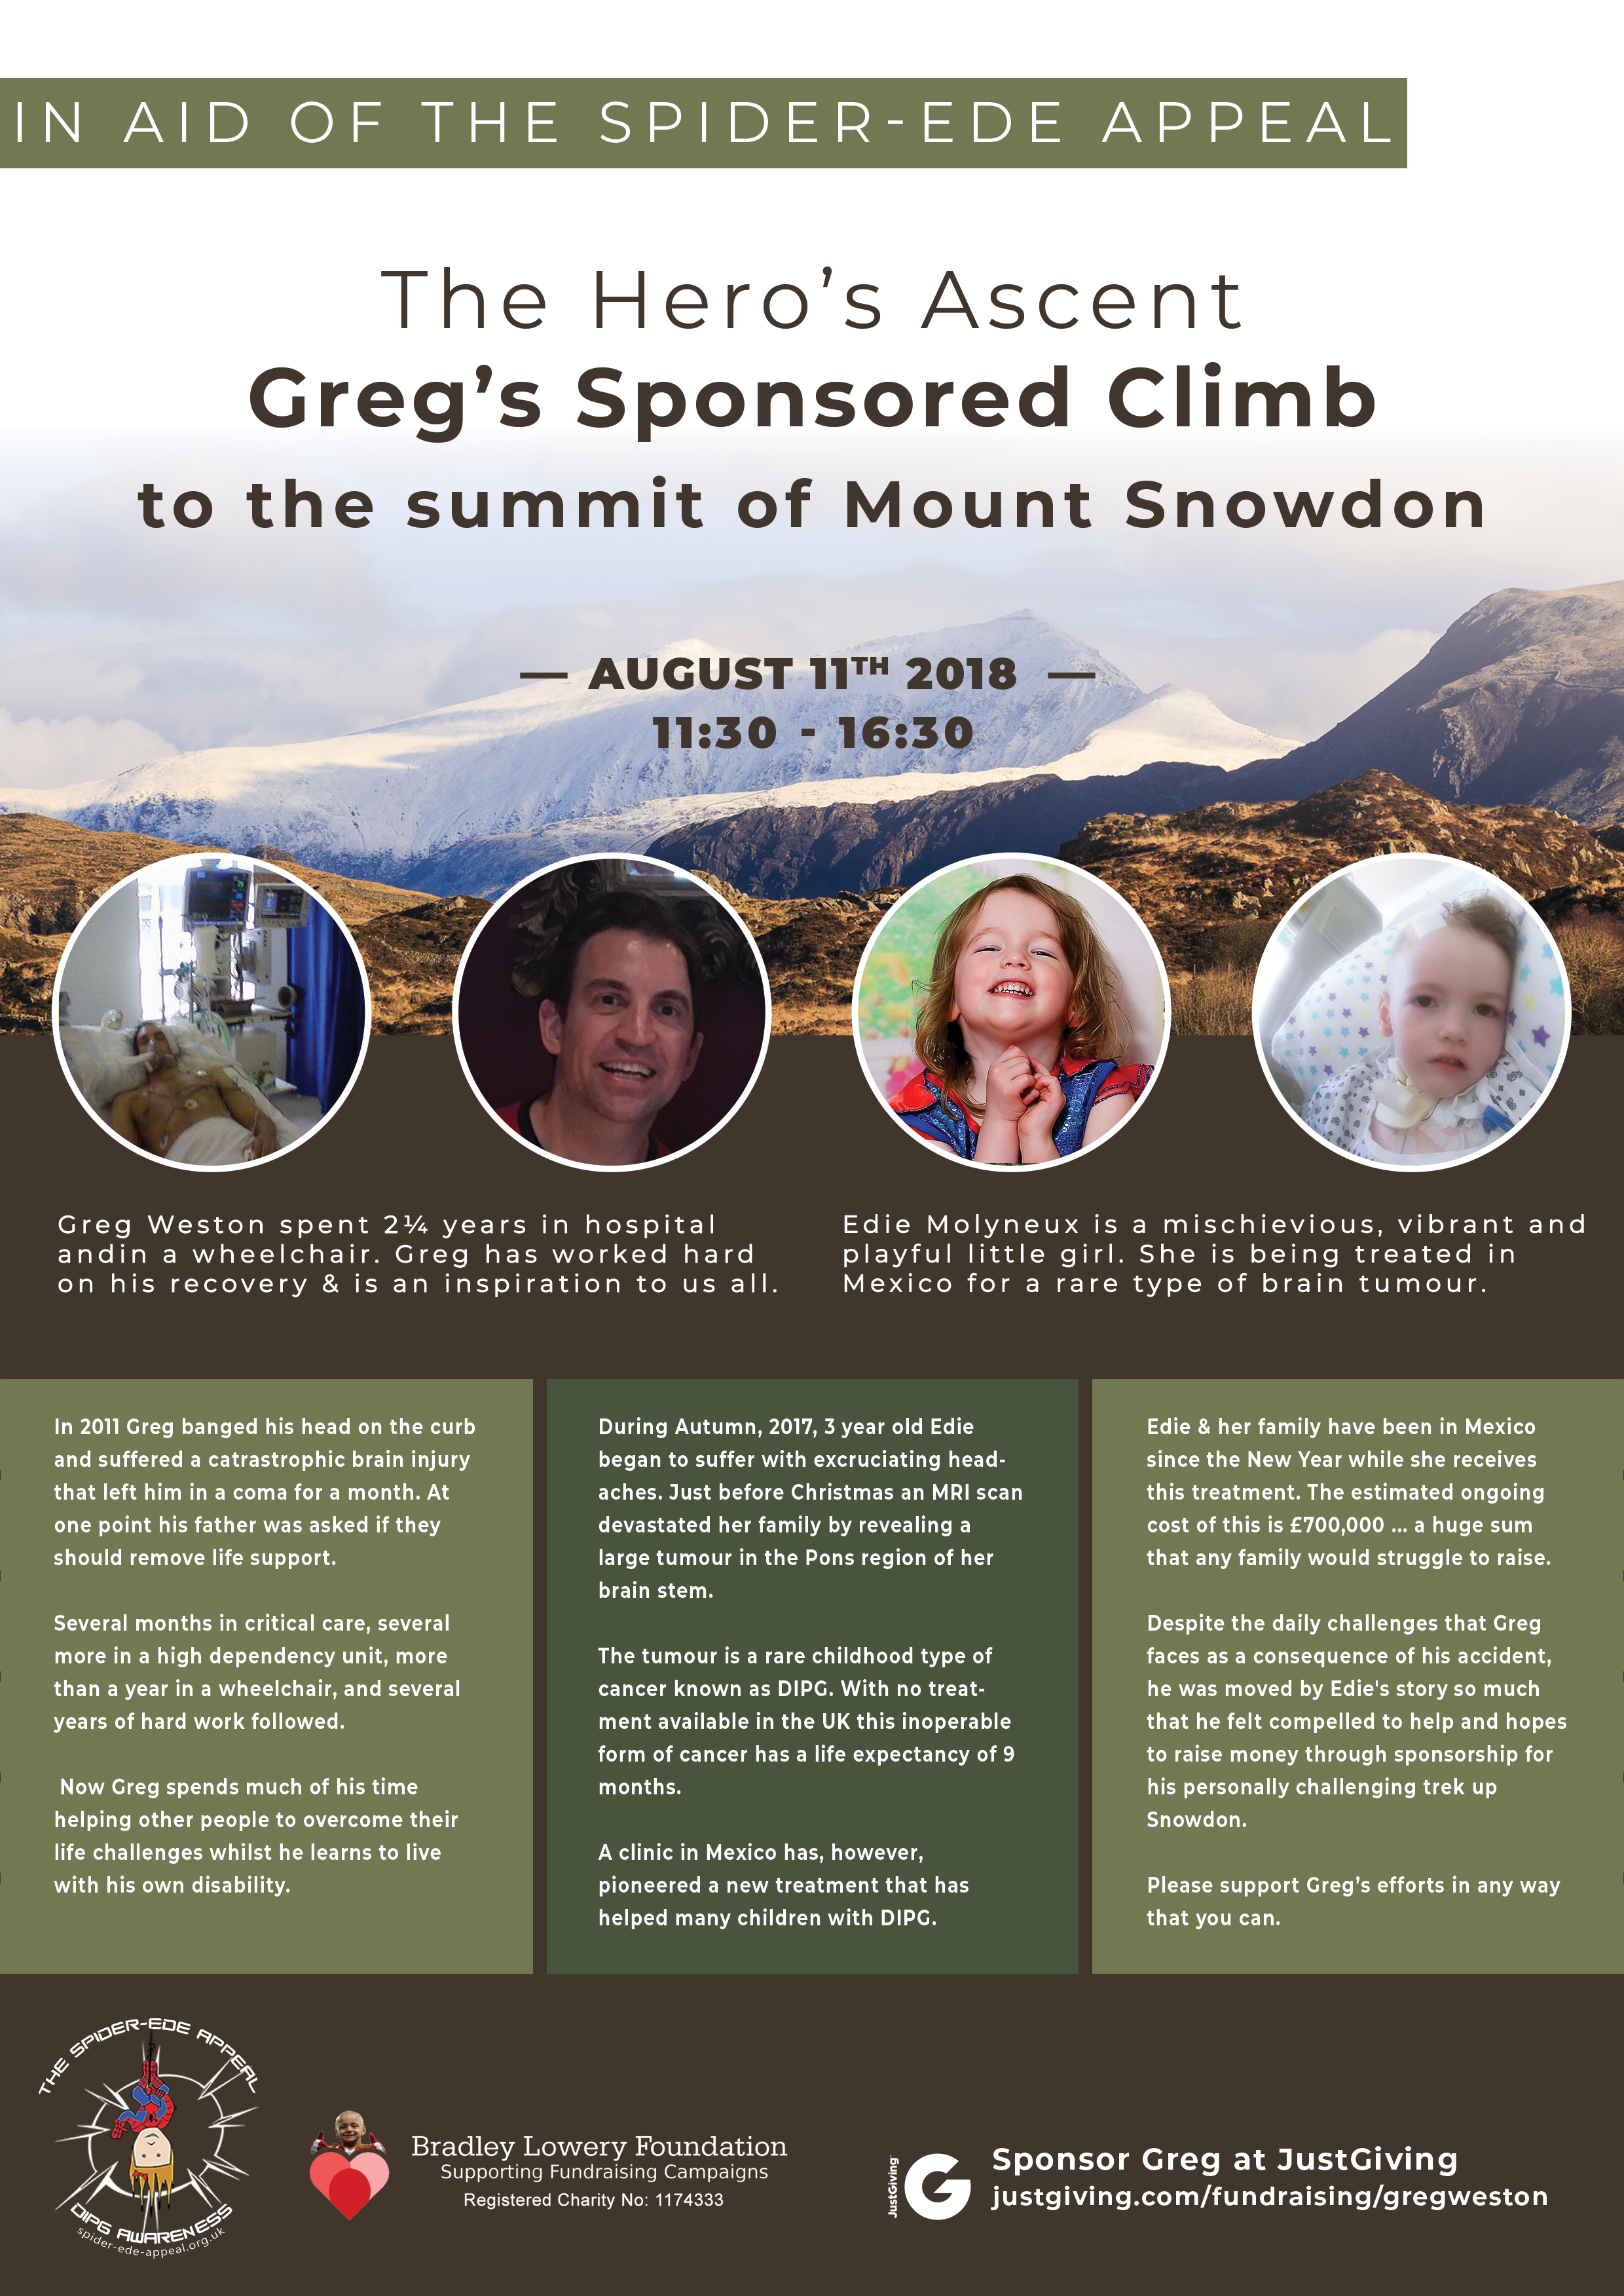 The Hero's Ascent: Greg's Sponsored Climb to the Summit of Mt. Snowdon (Poster)